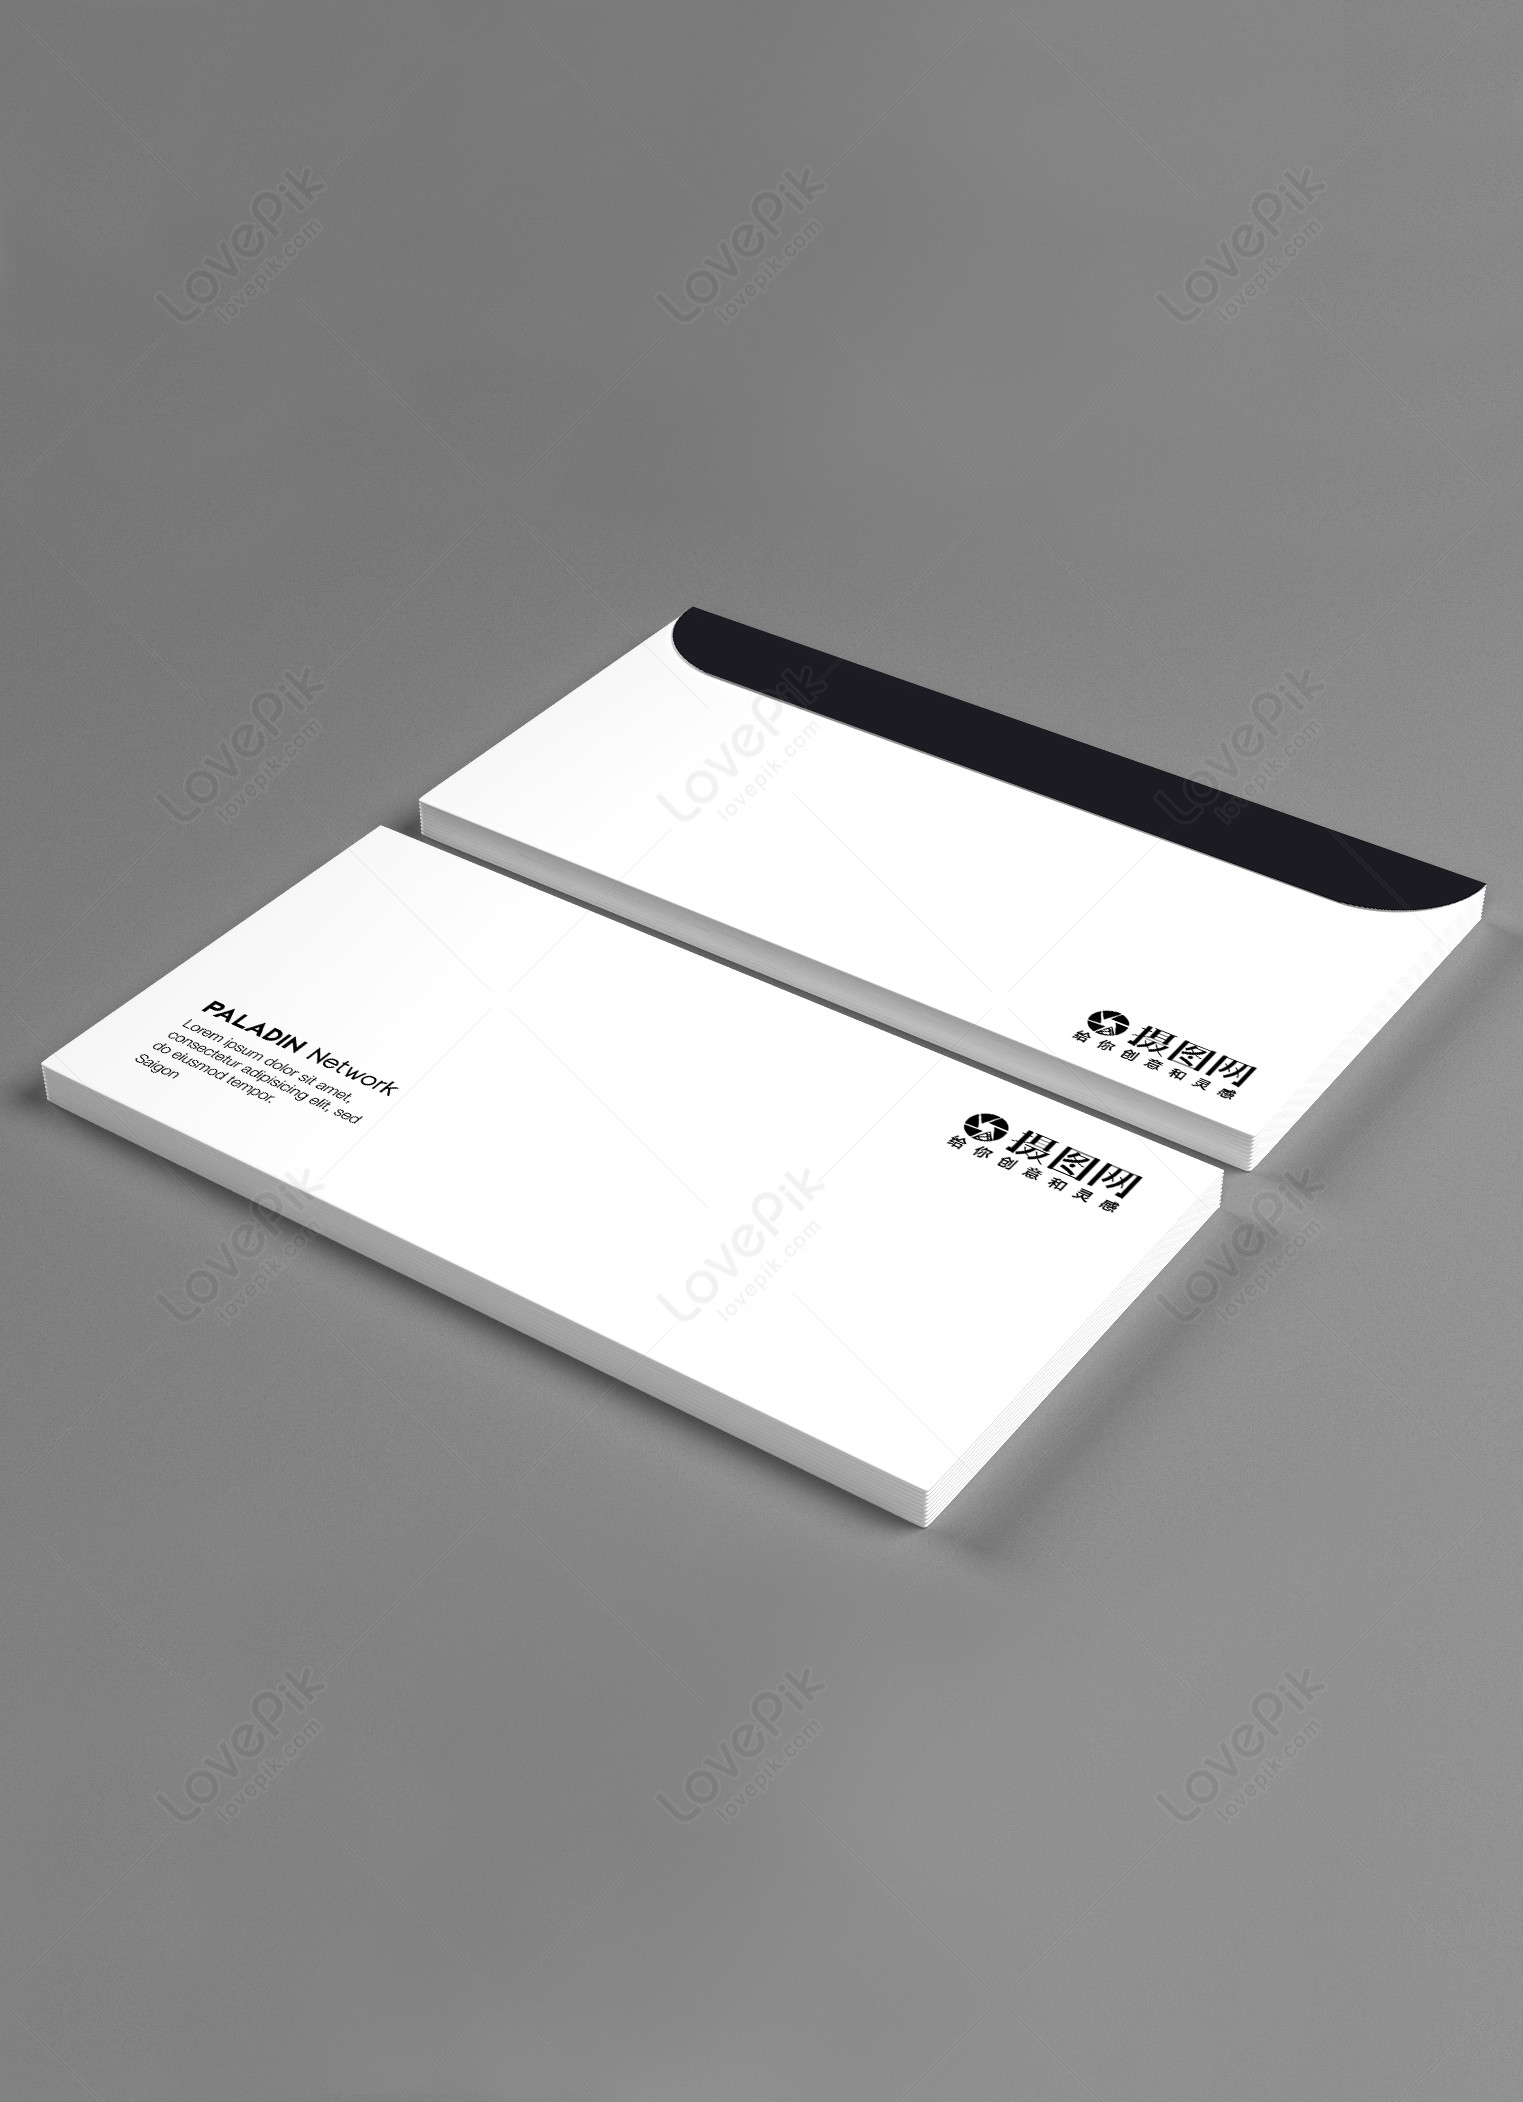 Envelope mockup template image_picture free download ...